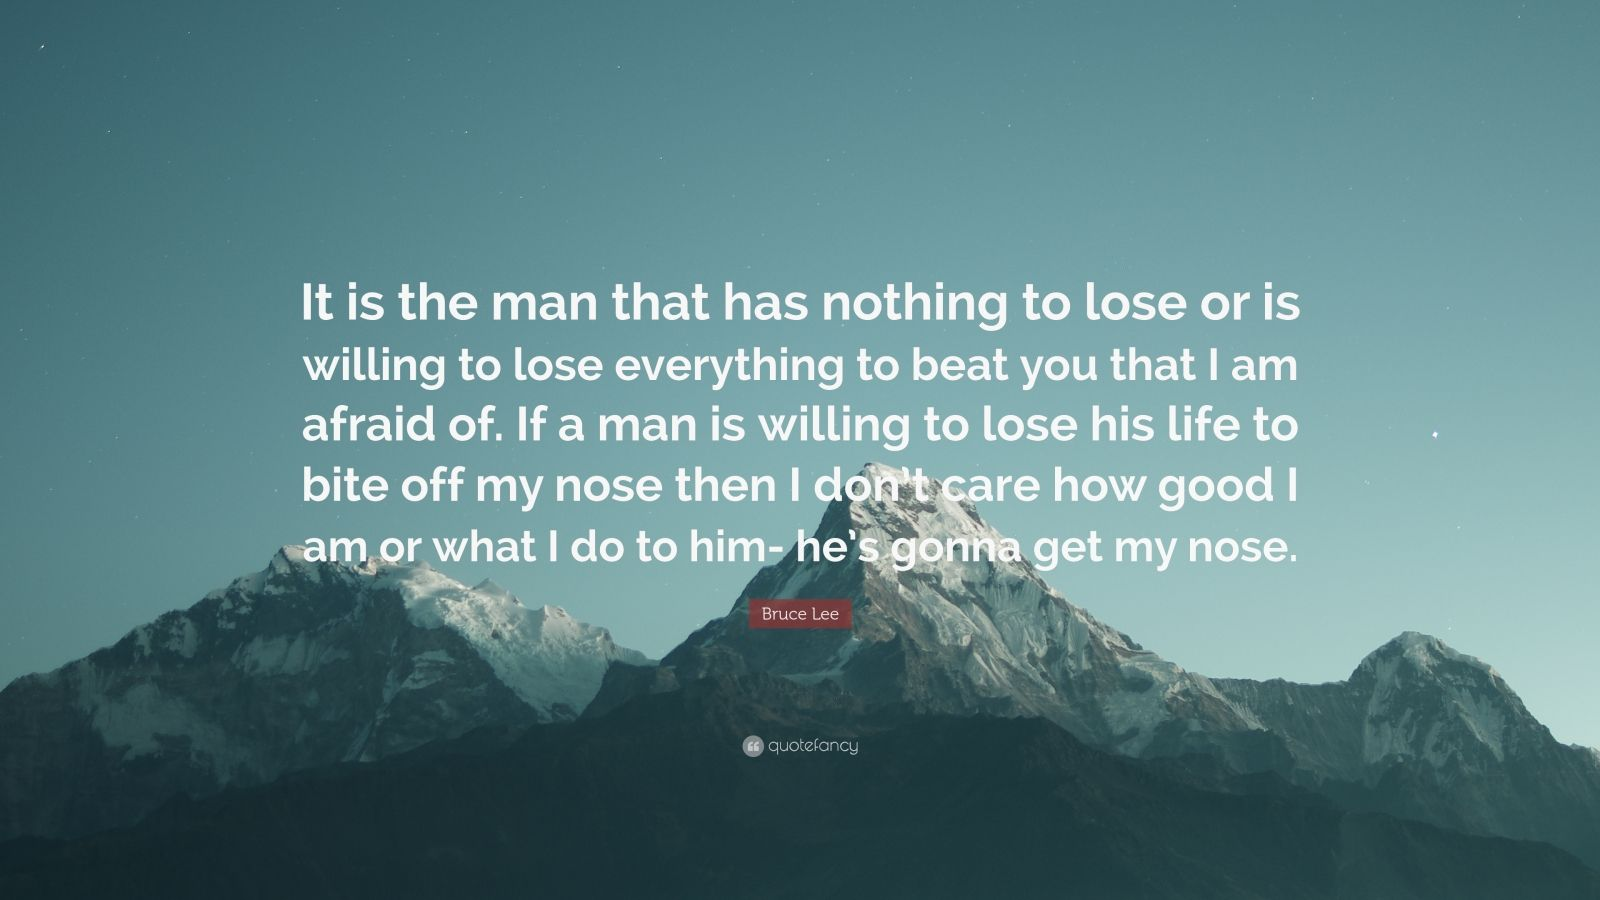 "Bruce Lee Quote: ""It is the man that has nothing to lose or is willing to lose everything to beat you that I am afraid of. If a man is willing to lose his life to bite off my nose then I don't care how good I am or what I do to him- he's gonna get my nose."""